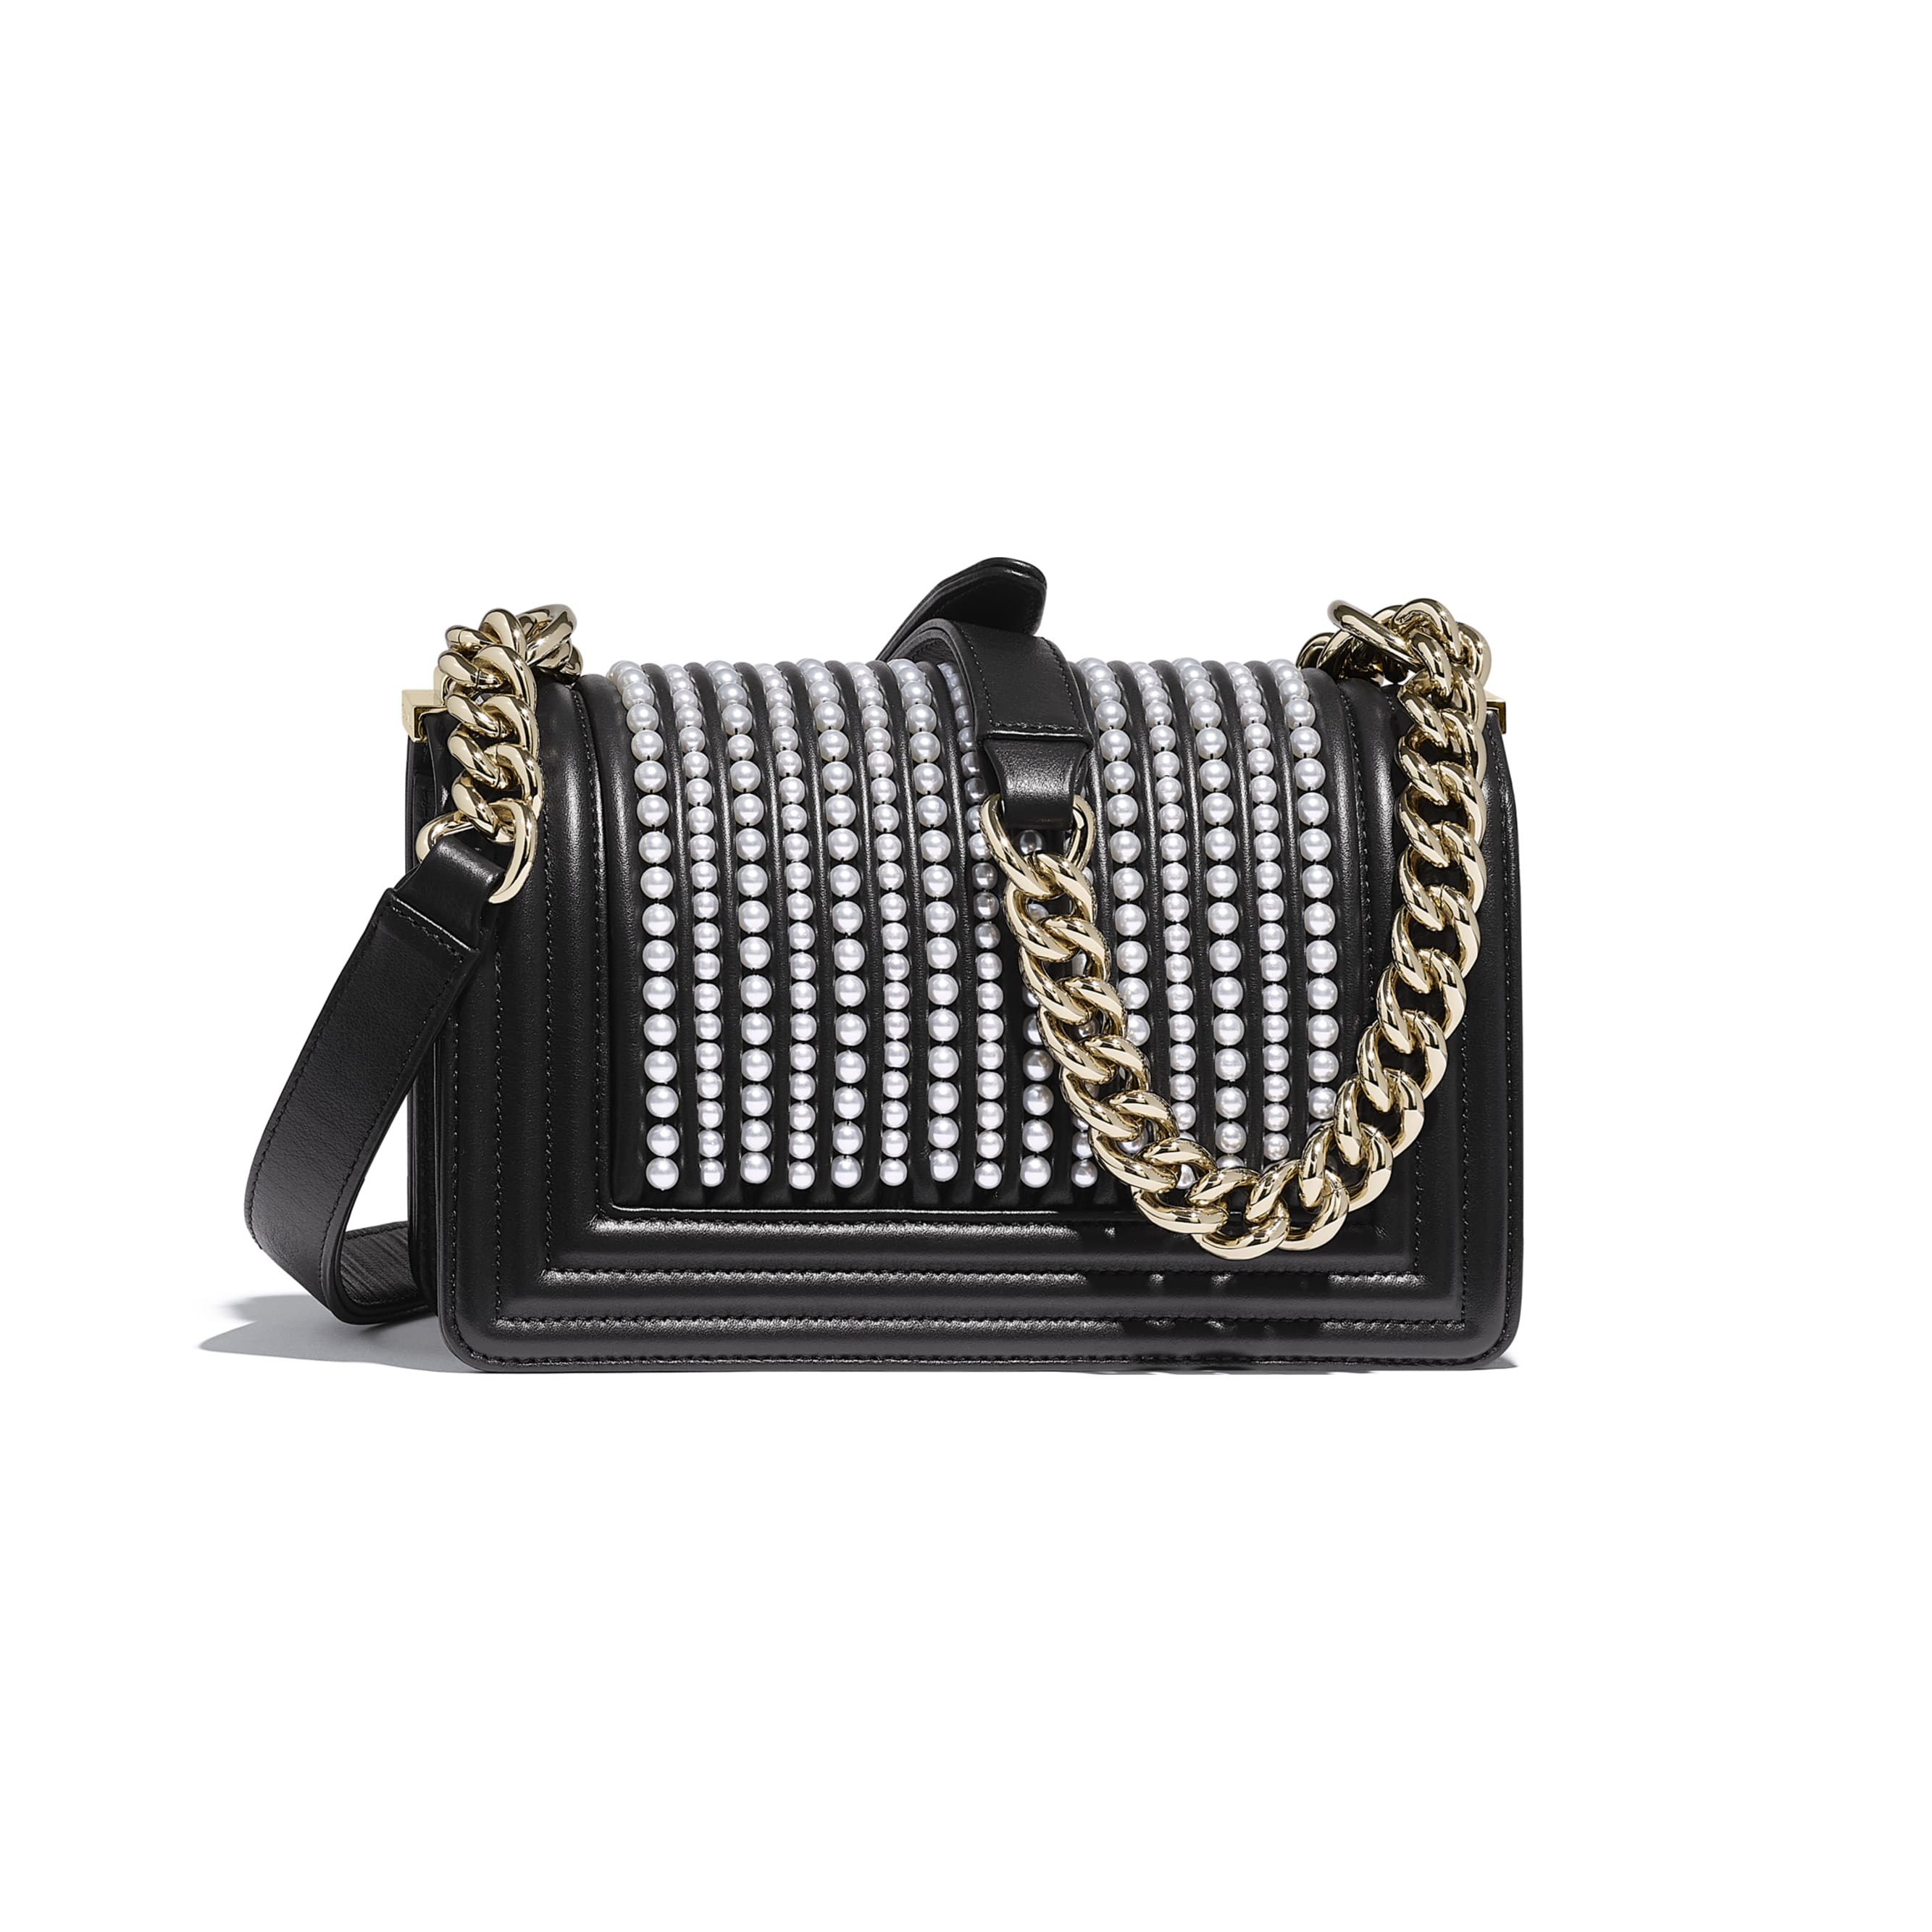 Small BOY CHANEL Handbag - Black - Calfskin, Imitation Pearls & Gold-Tone Metal - Alternative view - see standard sized version